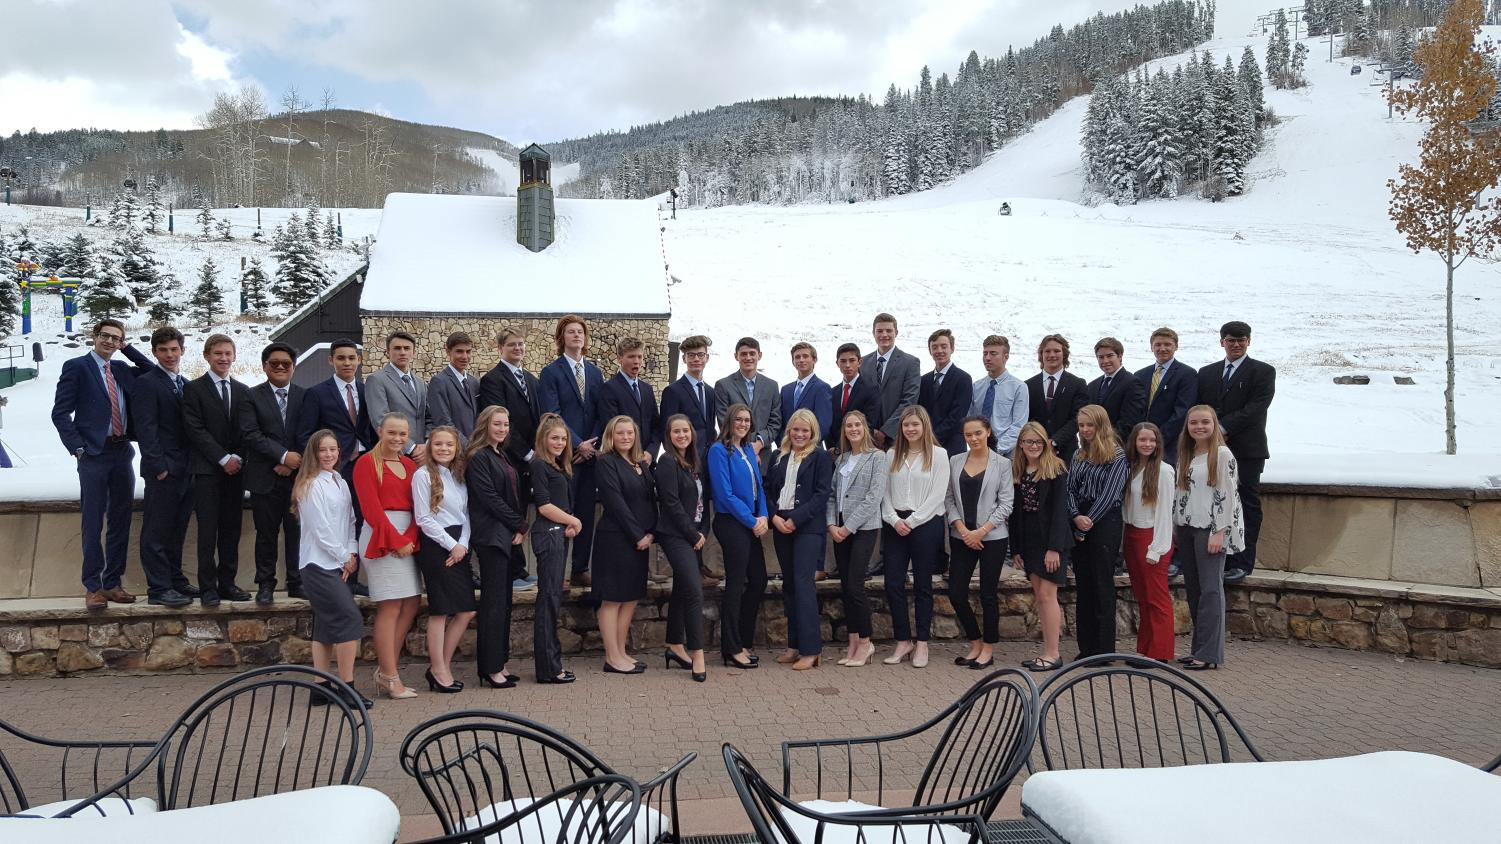 The Conifer DECA Chapter takes time from their busy competition schedule at Beaver Creek to pose for a group photo.